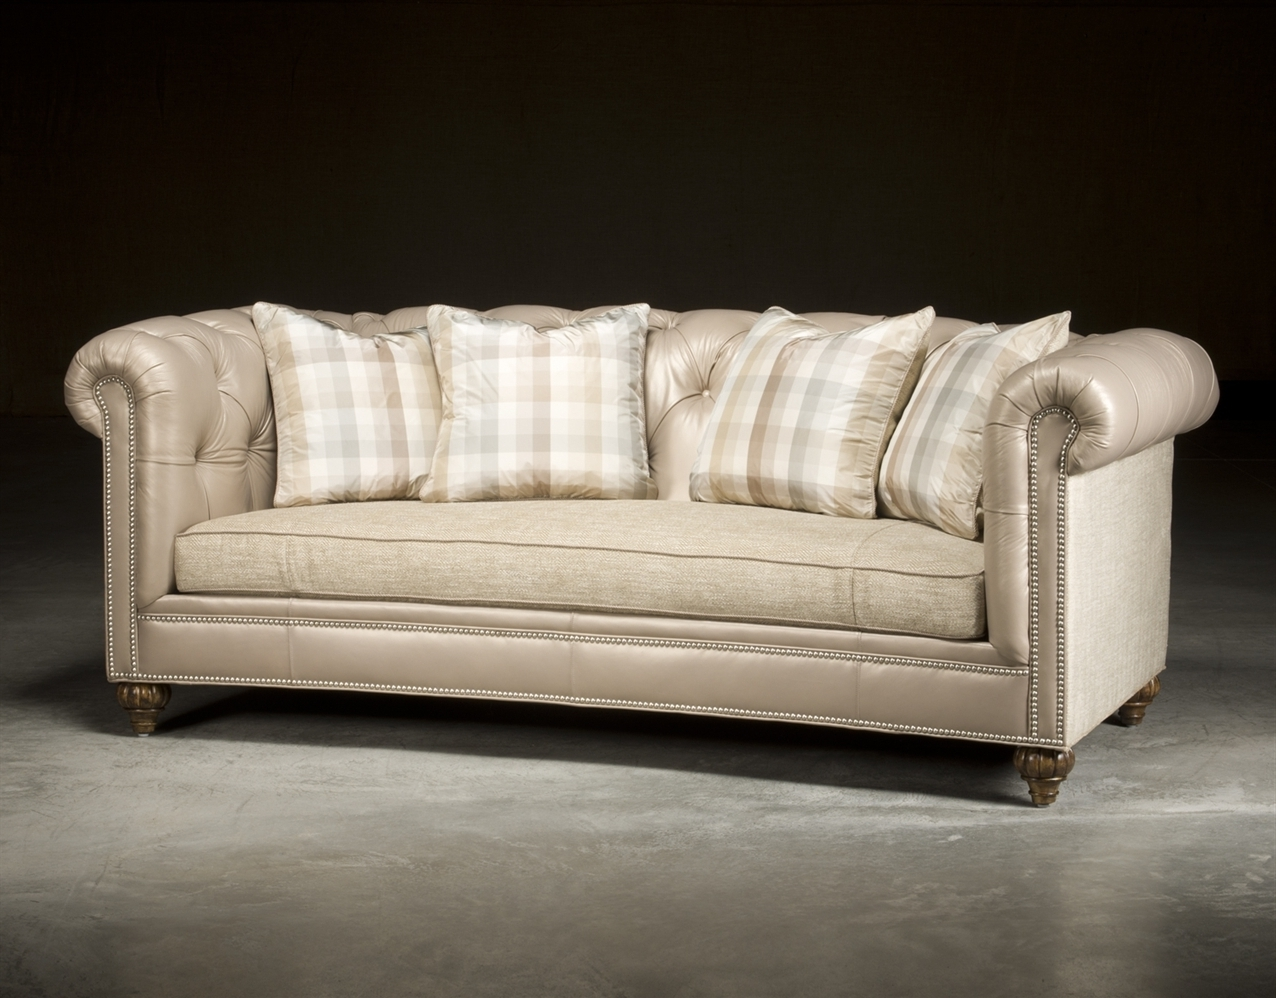 Sofa : Formal Sofa Sofa Clearance High Quality Furniture Brands Pertaining To Most Current Mid Range Sofas (View 4 of 15)